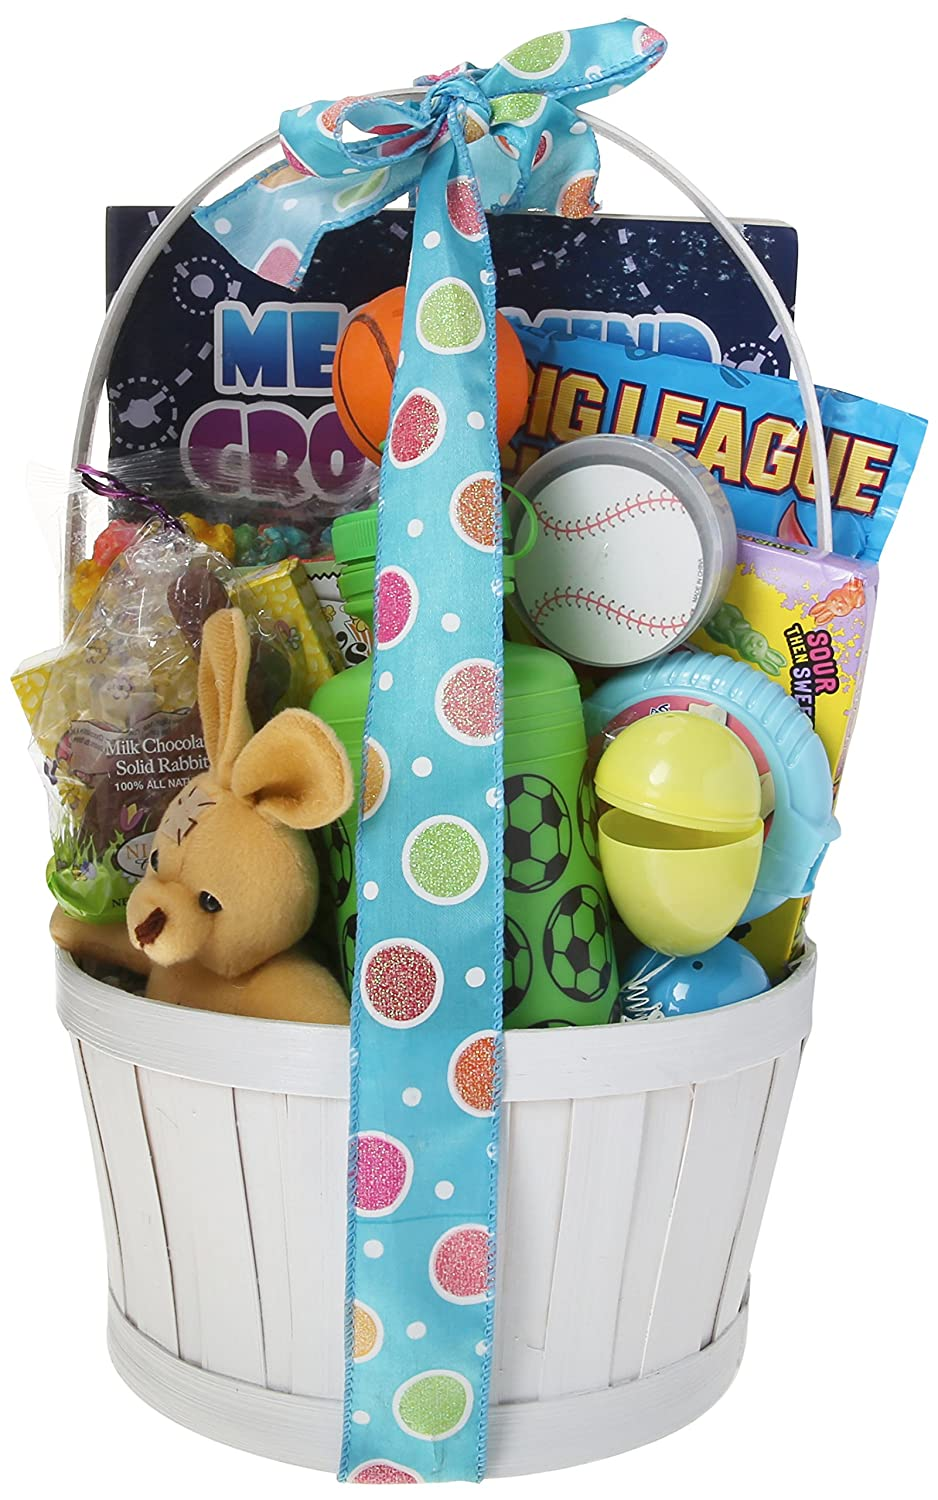 Greatarrivals gift baskets egg streme sports easter gift basket greatarrivals gift baskets egg streme sports easter gift basket boys 6 to 9 years 3 pound amazon grocery gourmet food negle Gallery